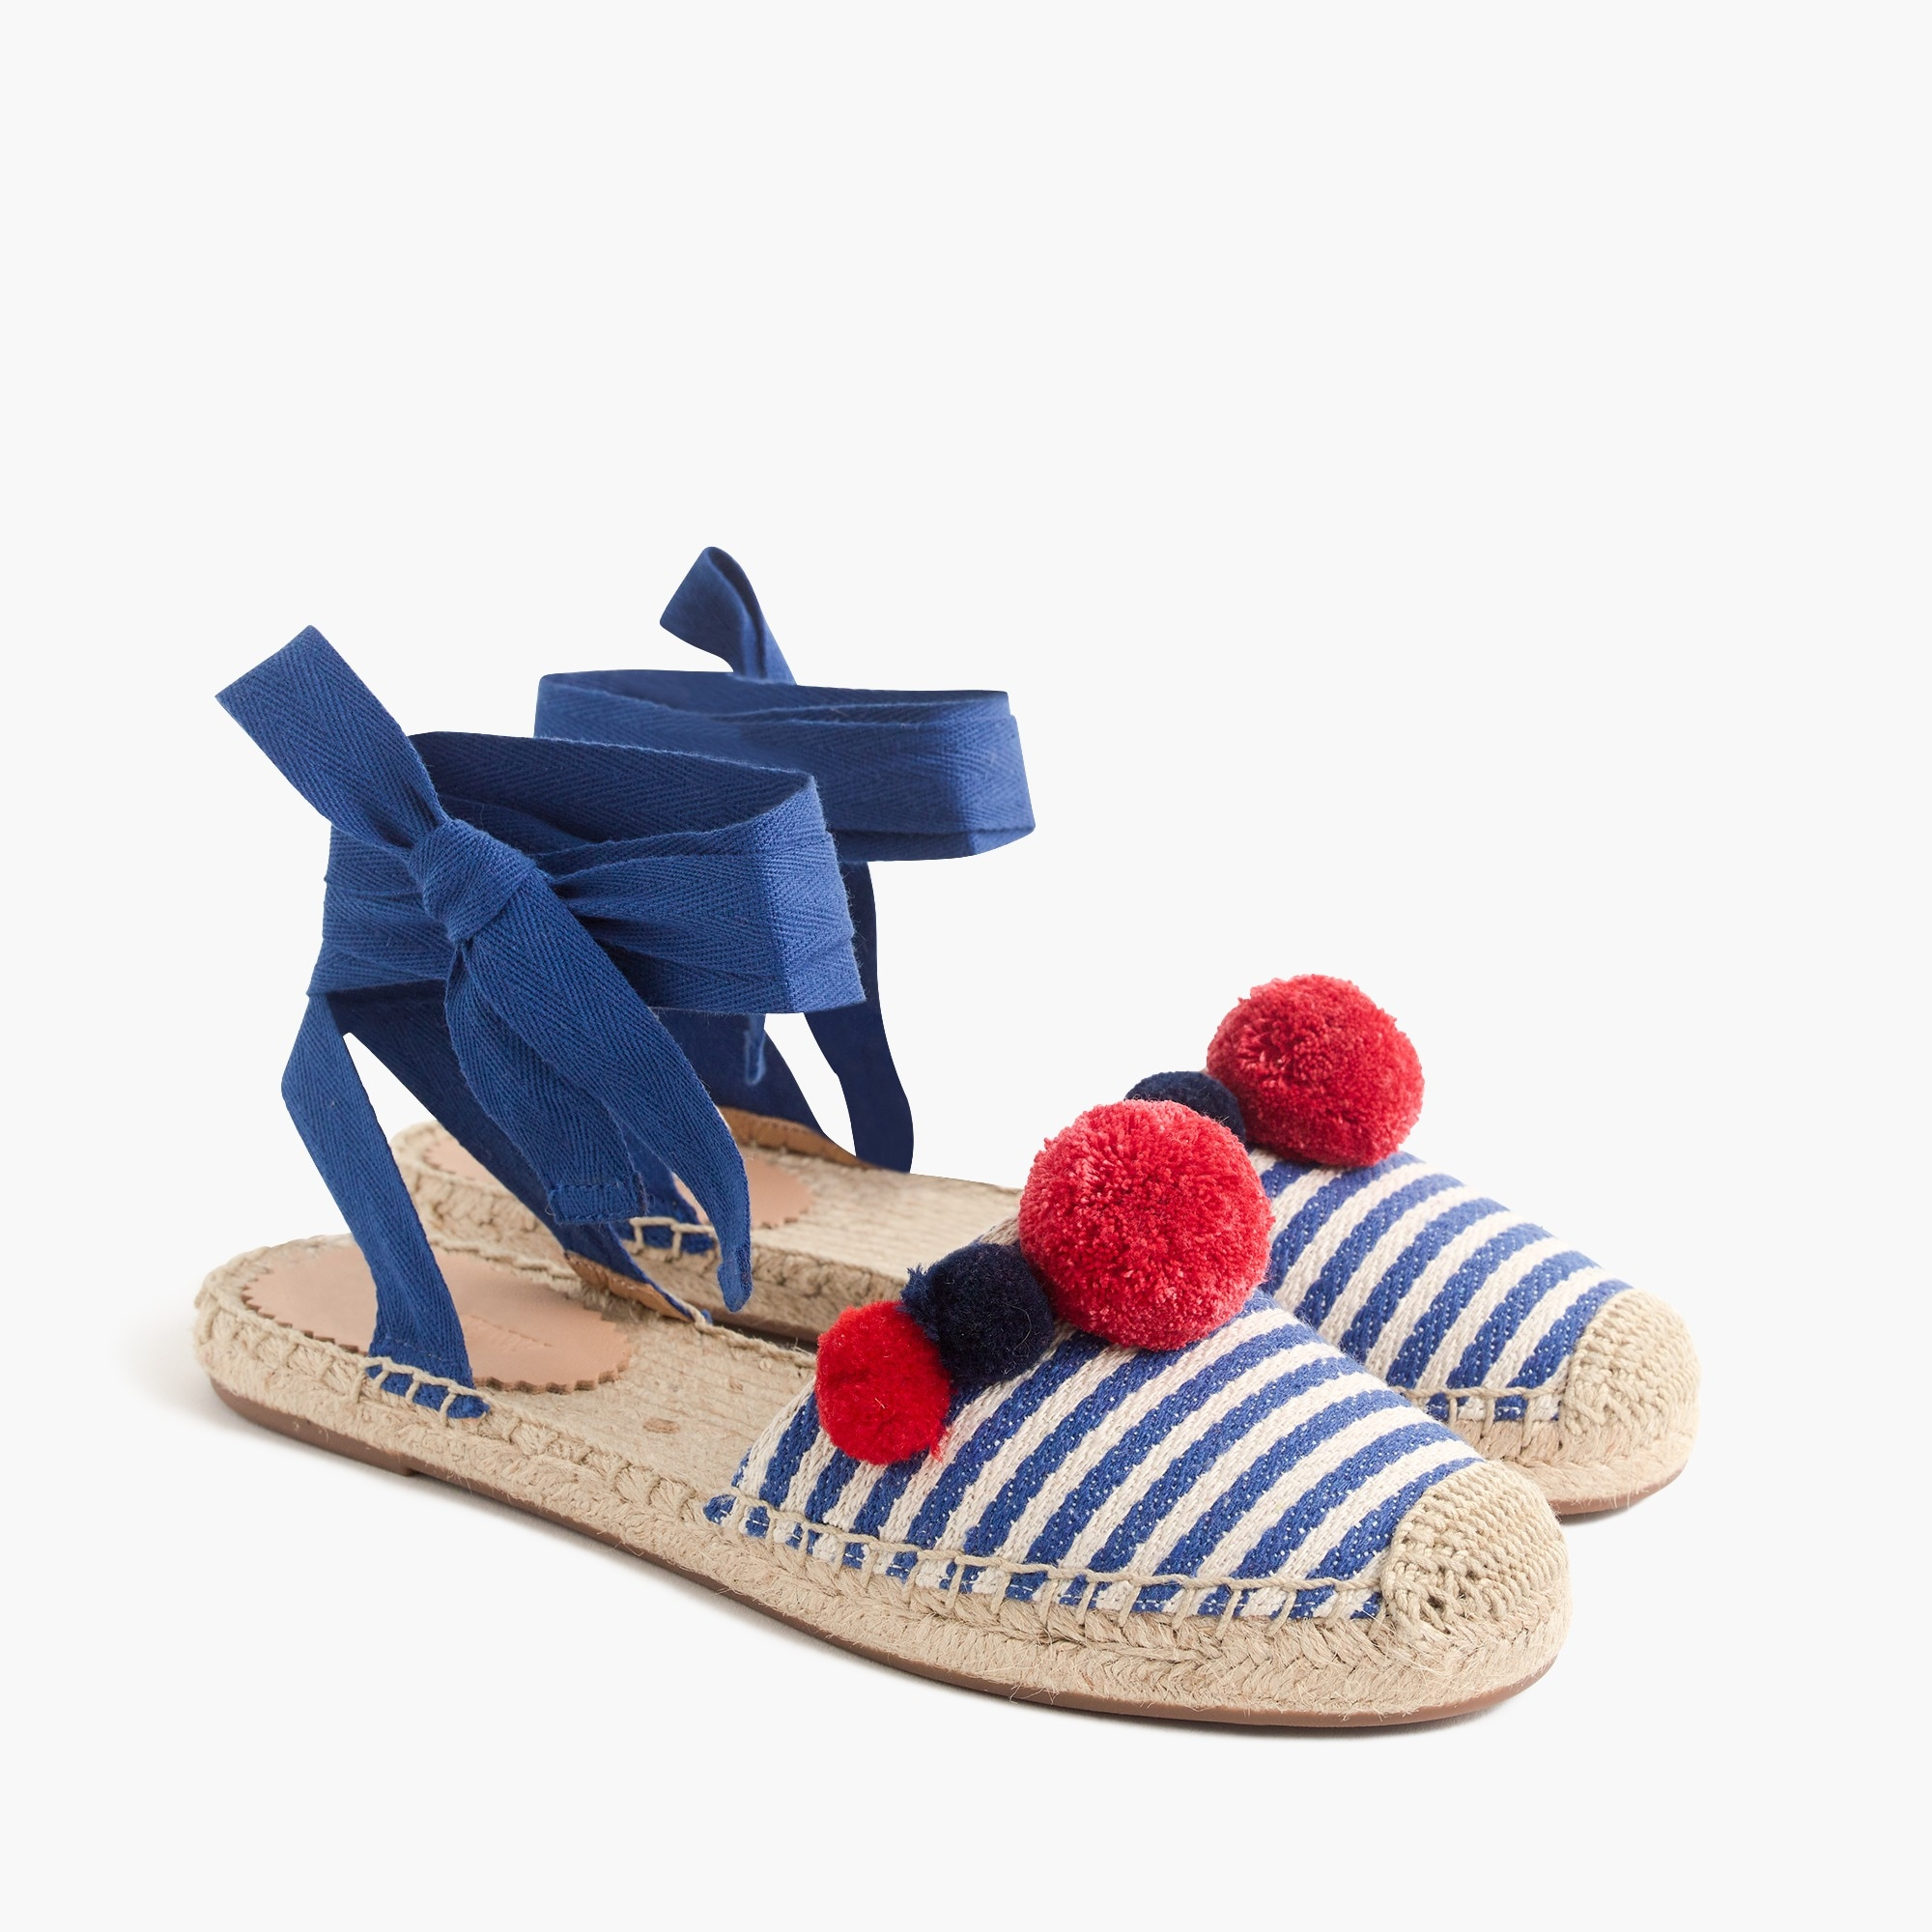 Ankle-wrap espadrilles with pom-poms